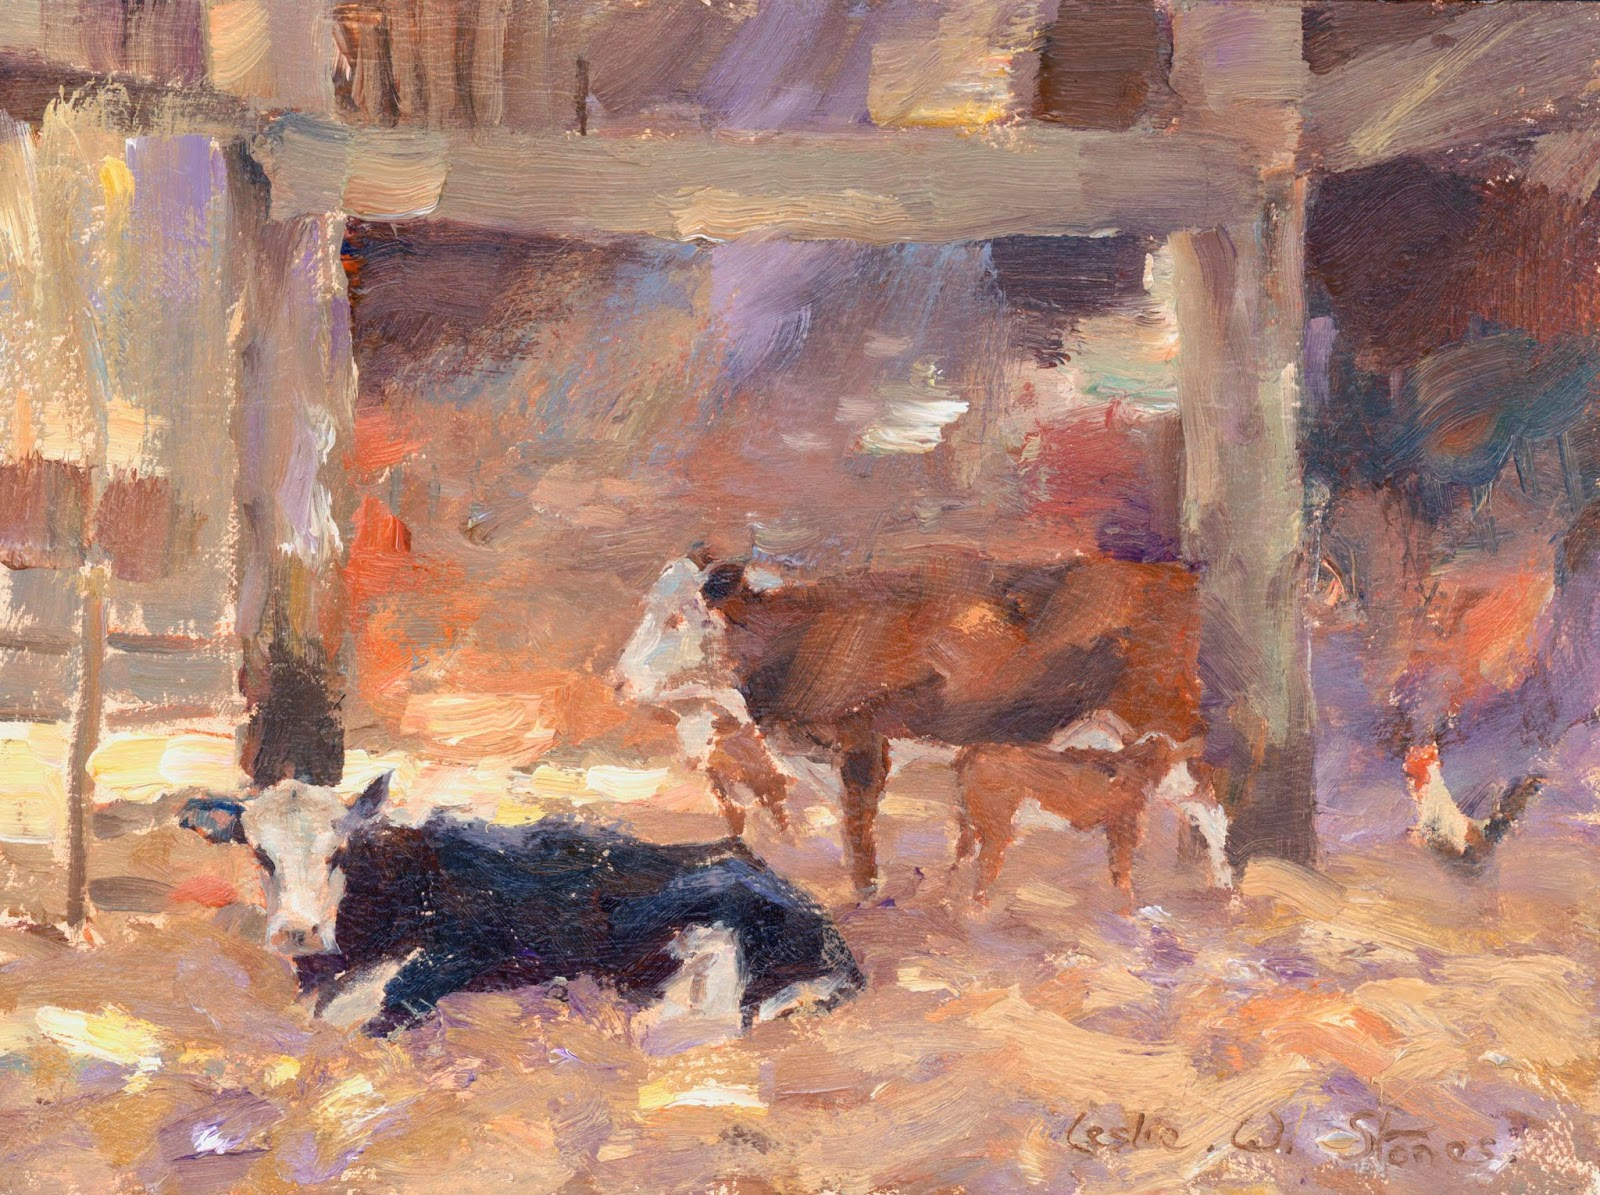 Cattle in a barn painting